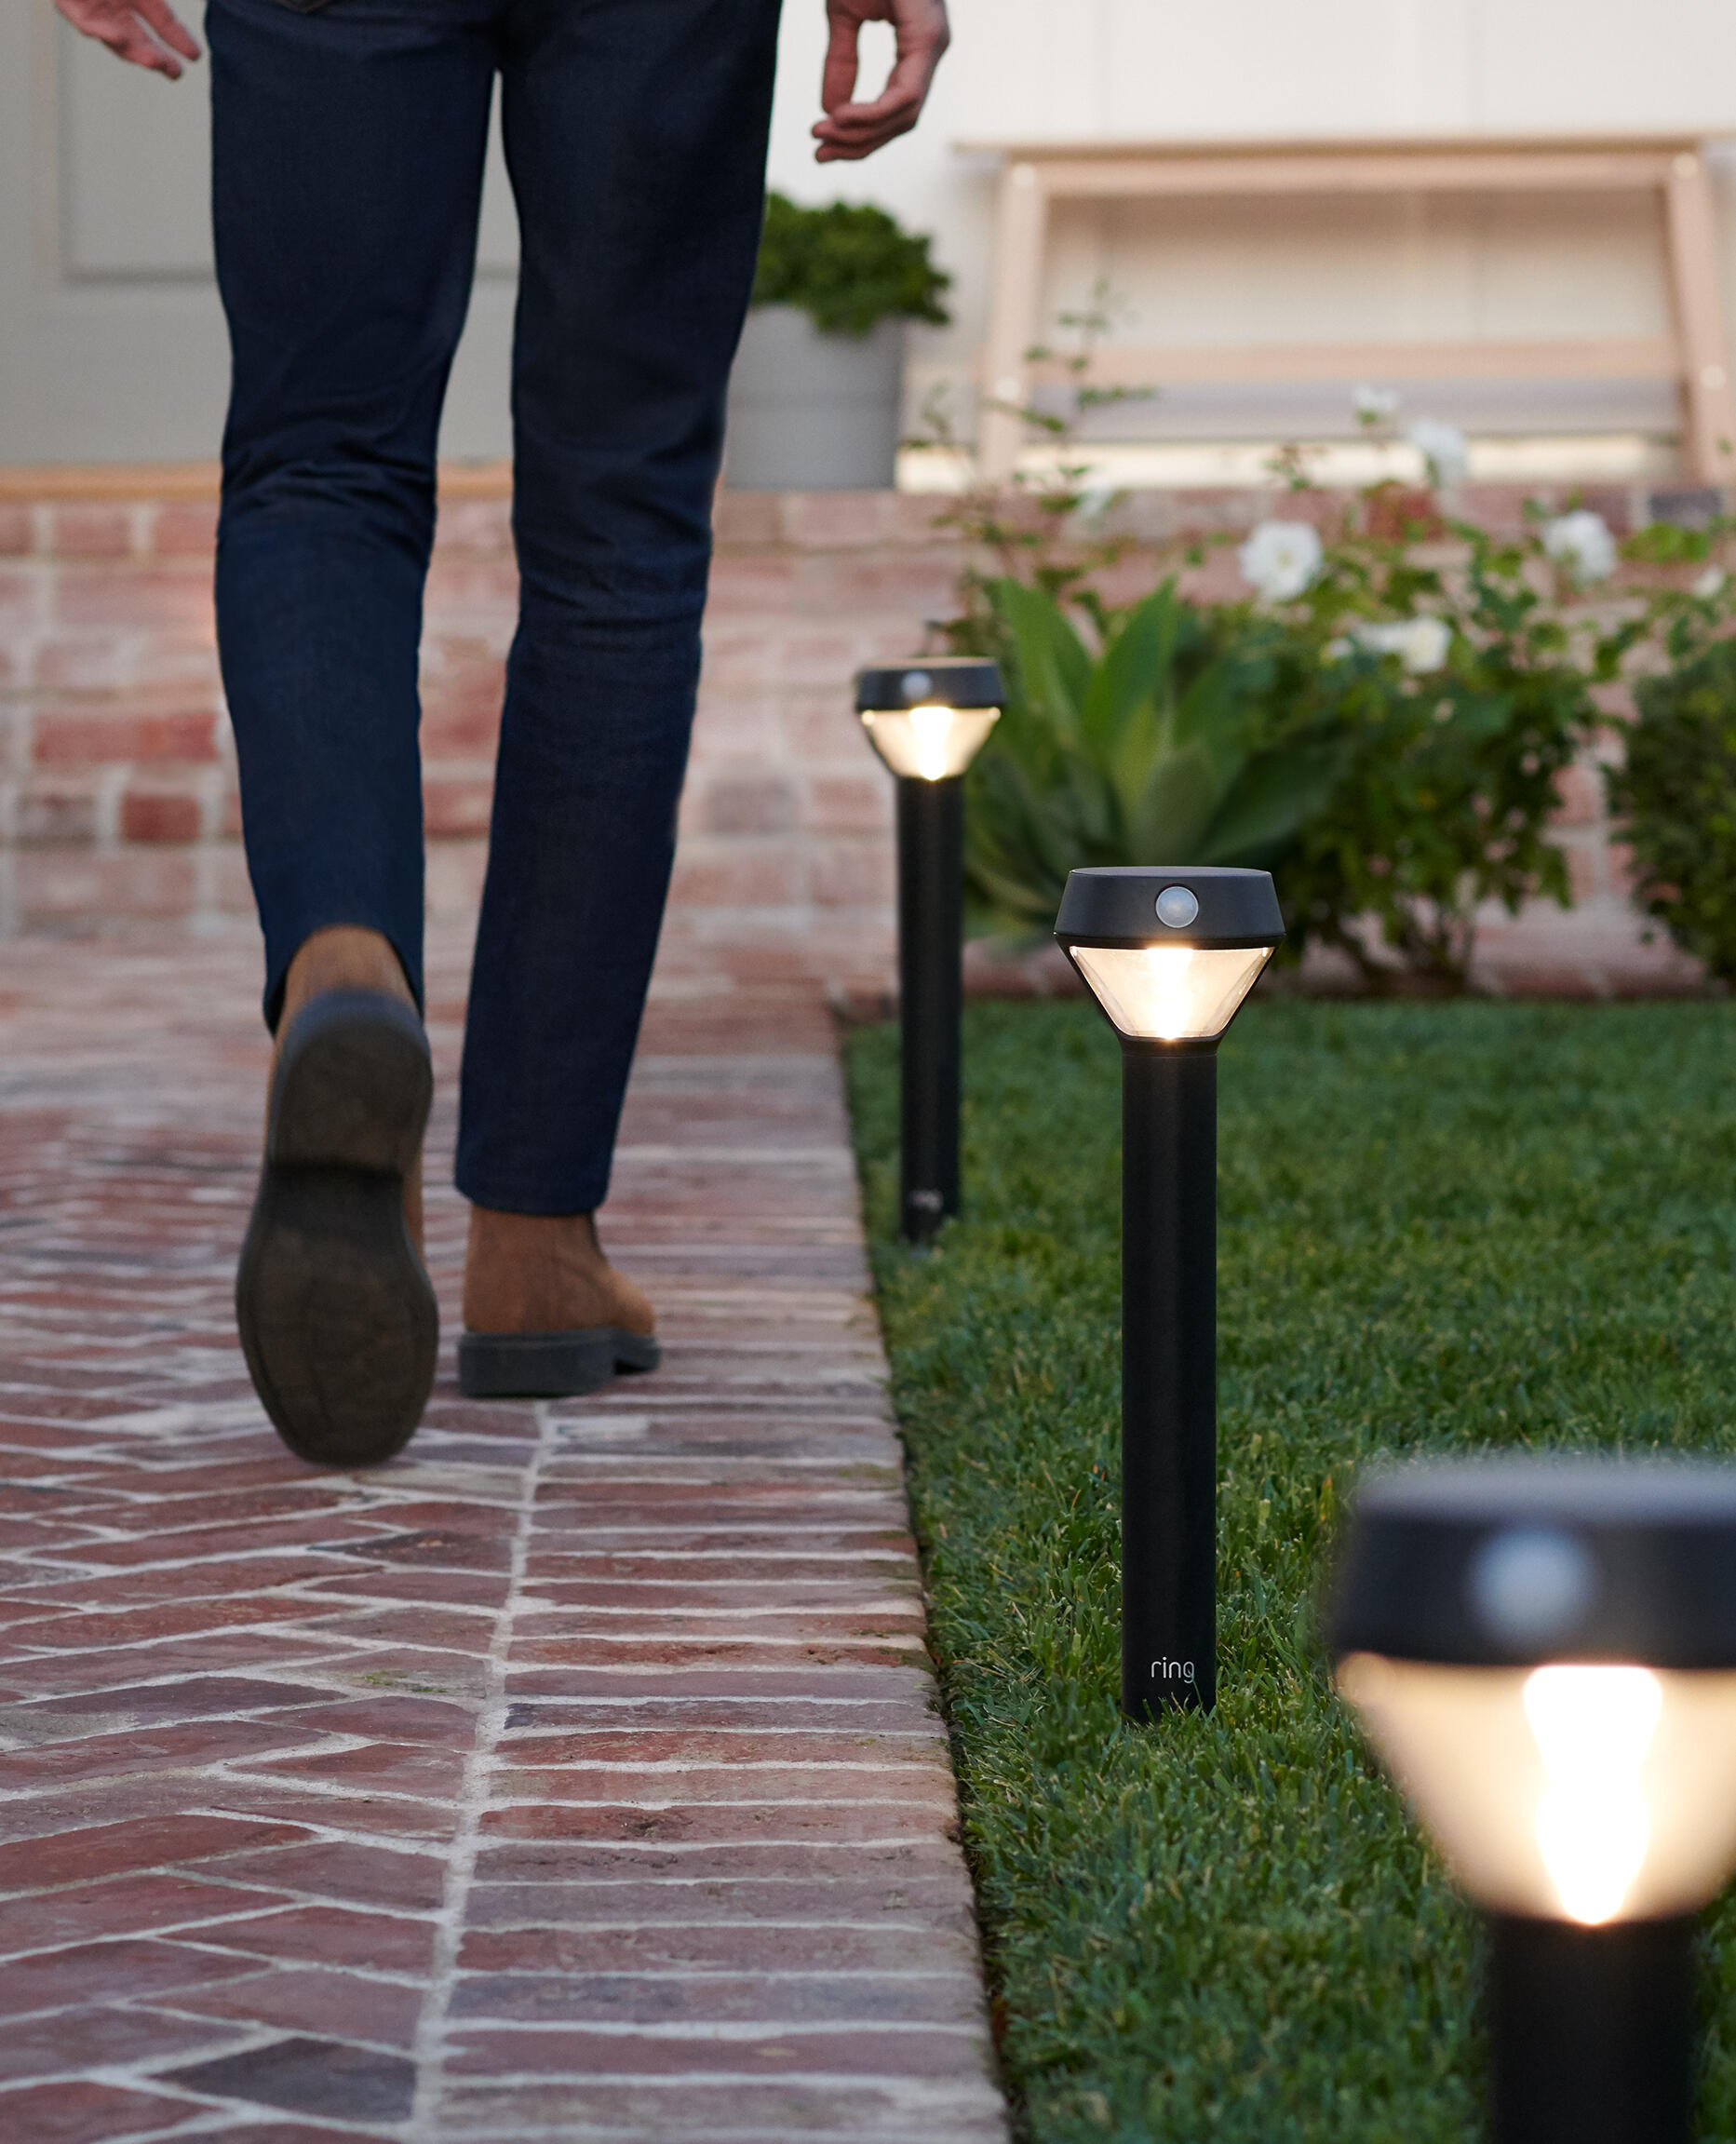 2019-lifestyle-insitu-smartlighting-pathlightsolar-manonbrickpathway